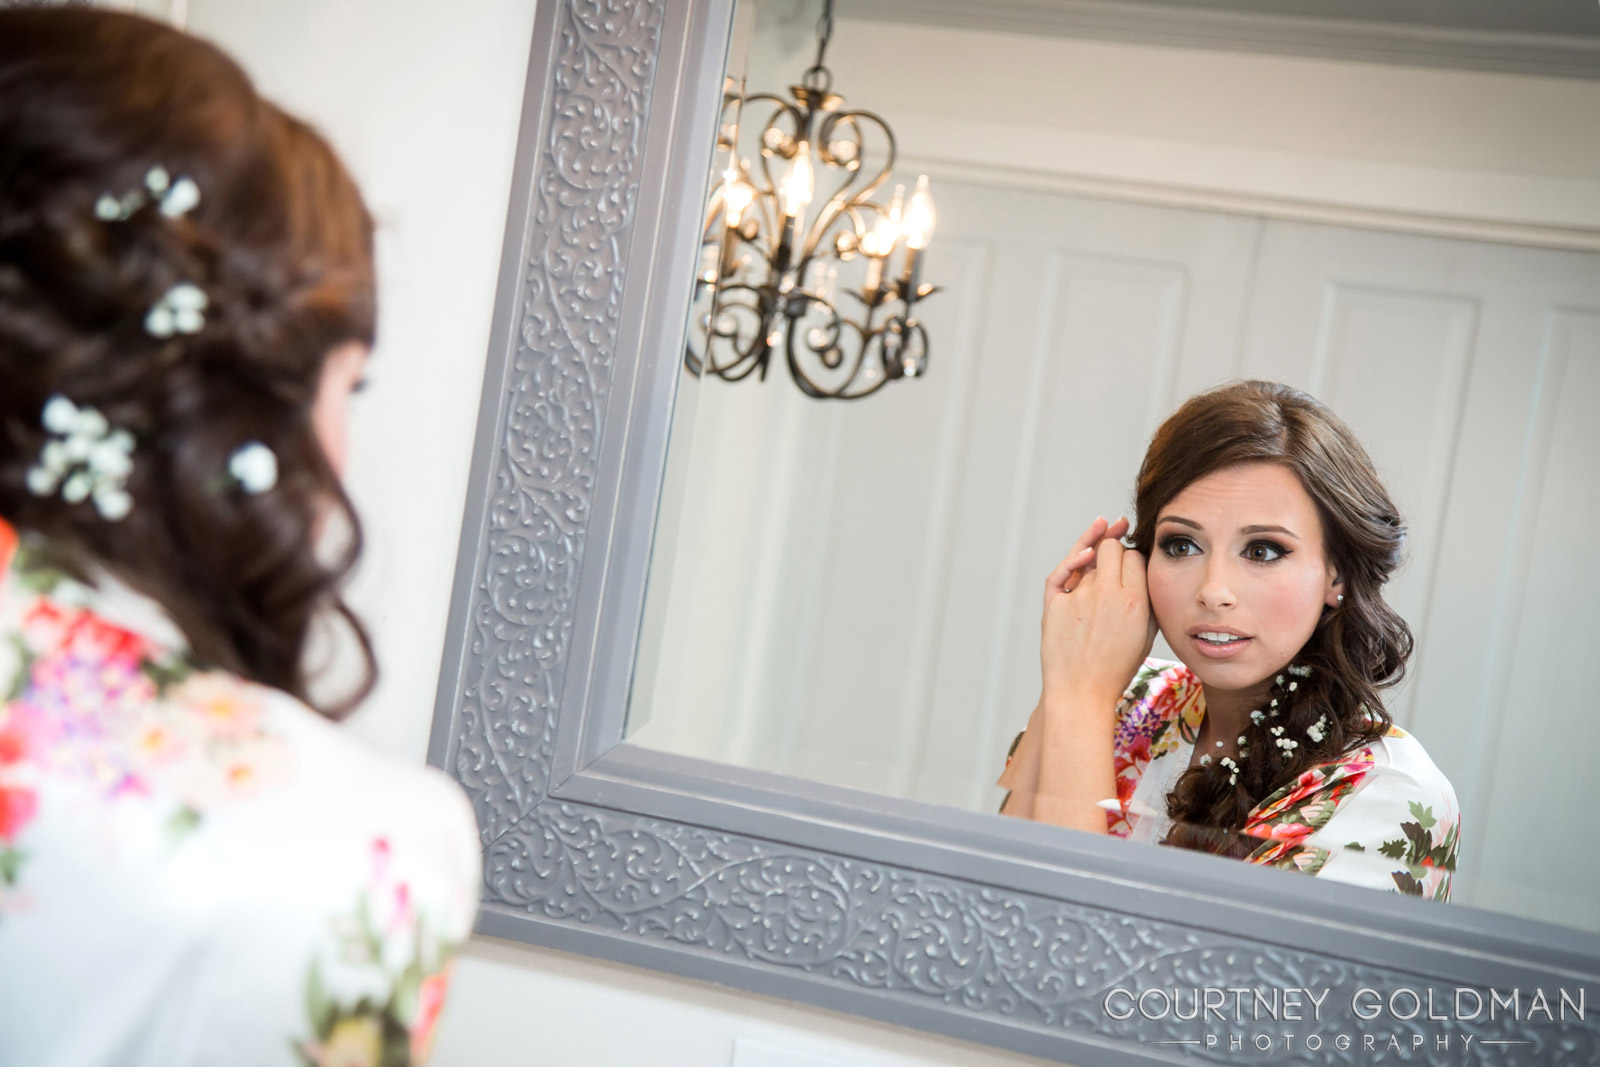 Atlanta-Wedding-Photography-by-Courtney-Goldman-44.jpg